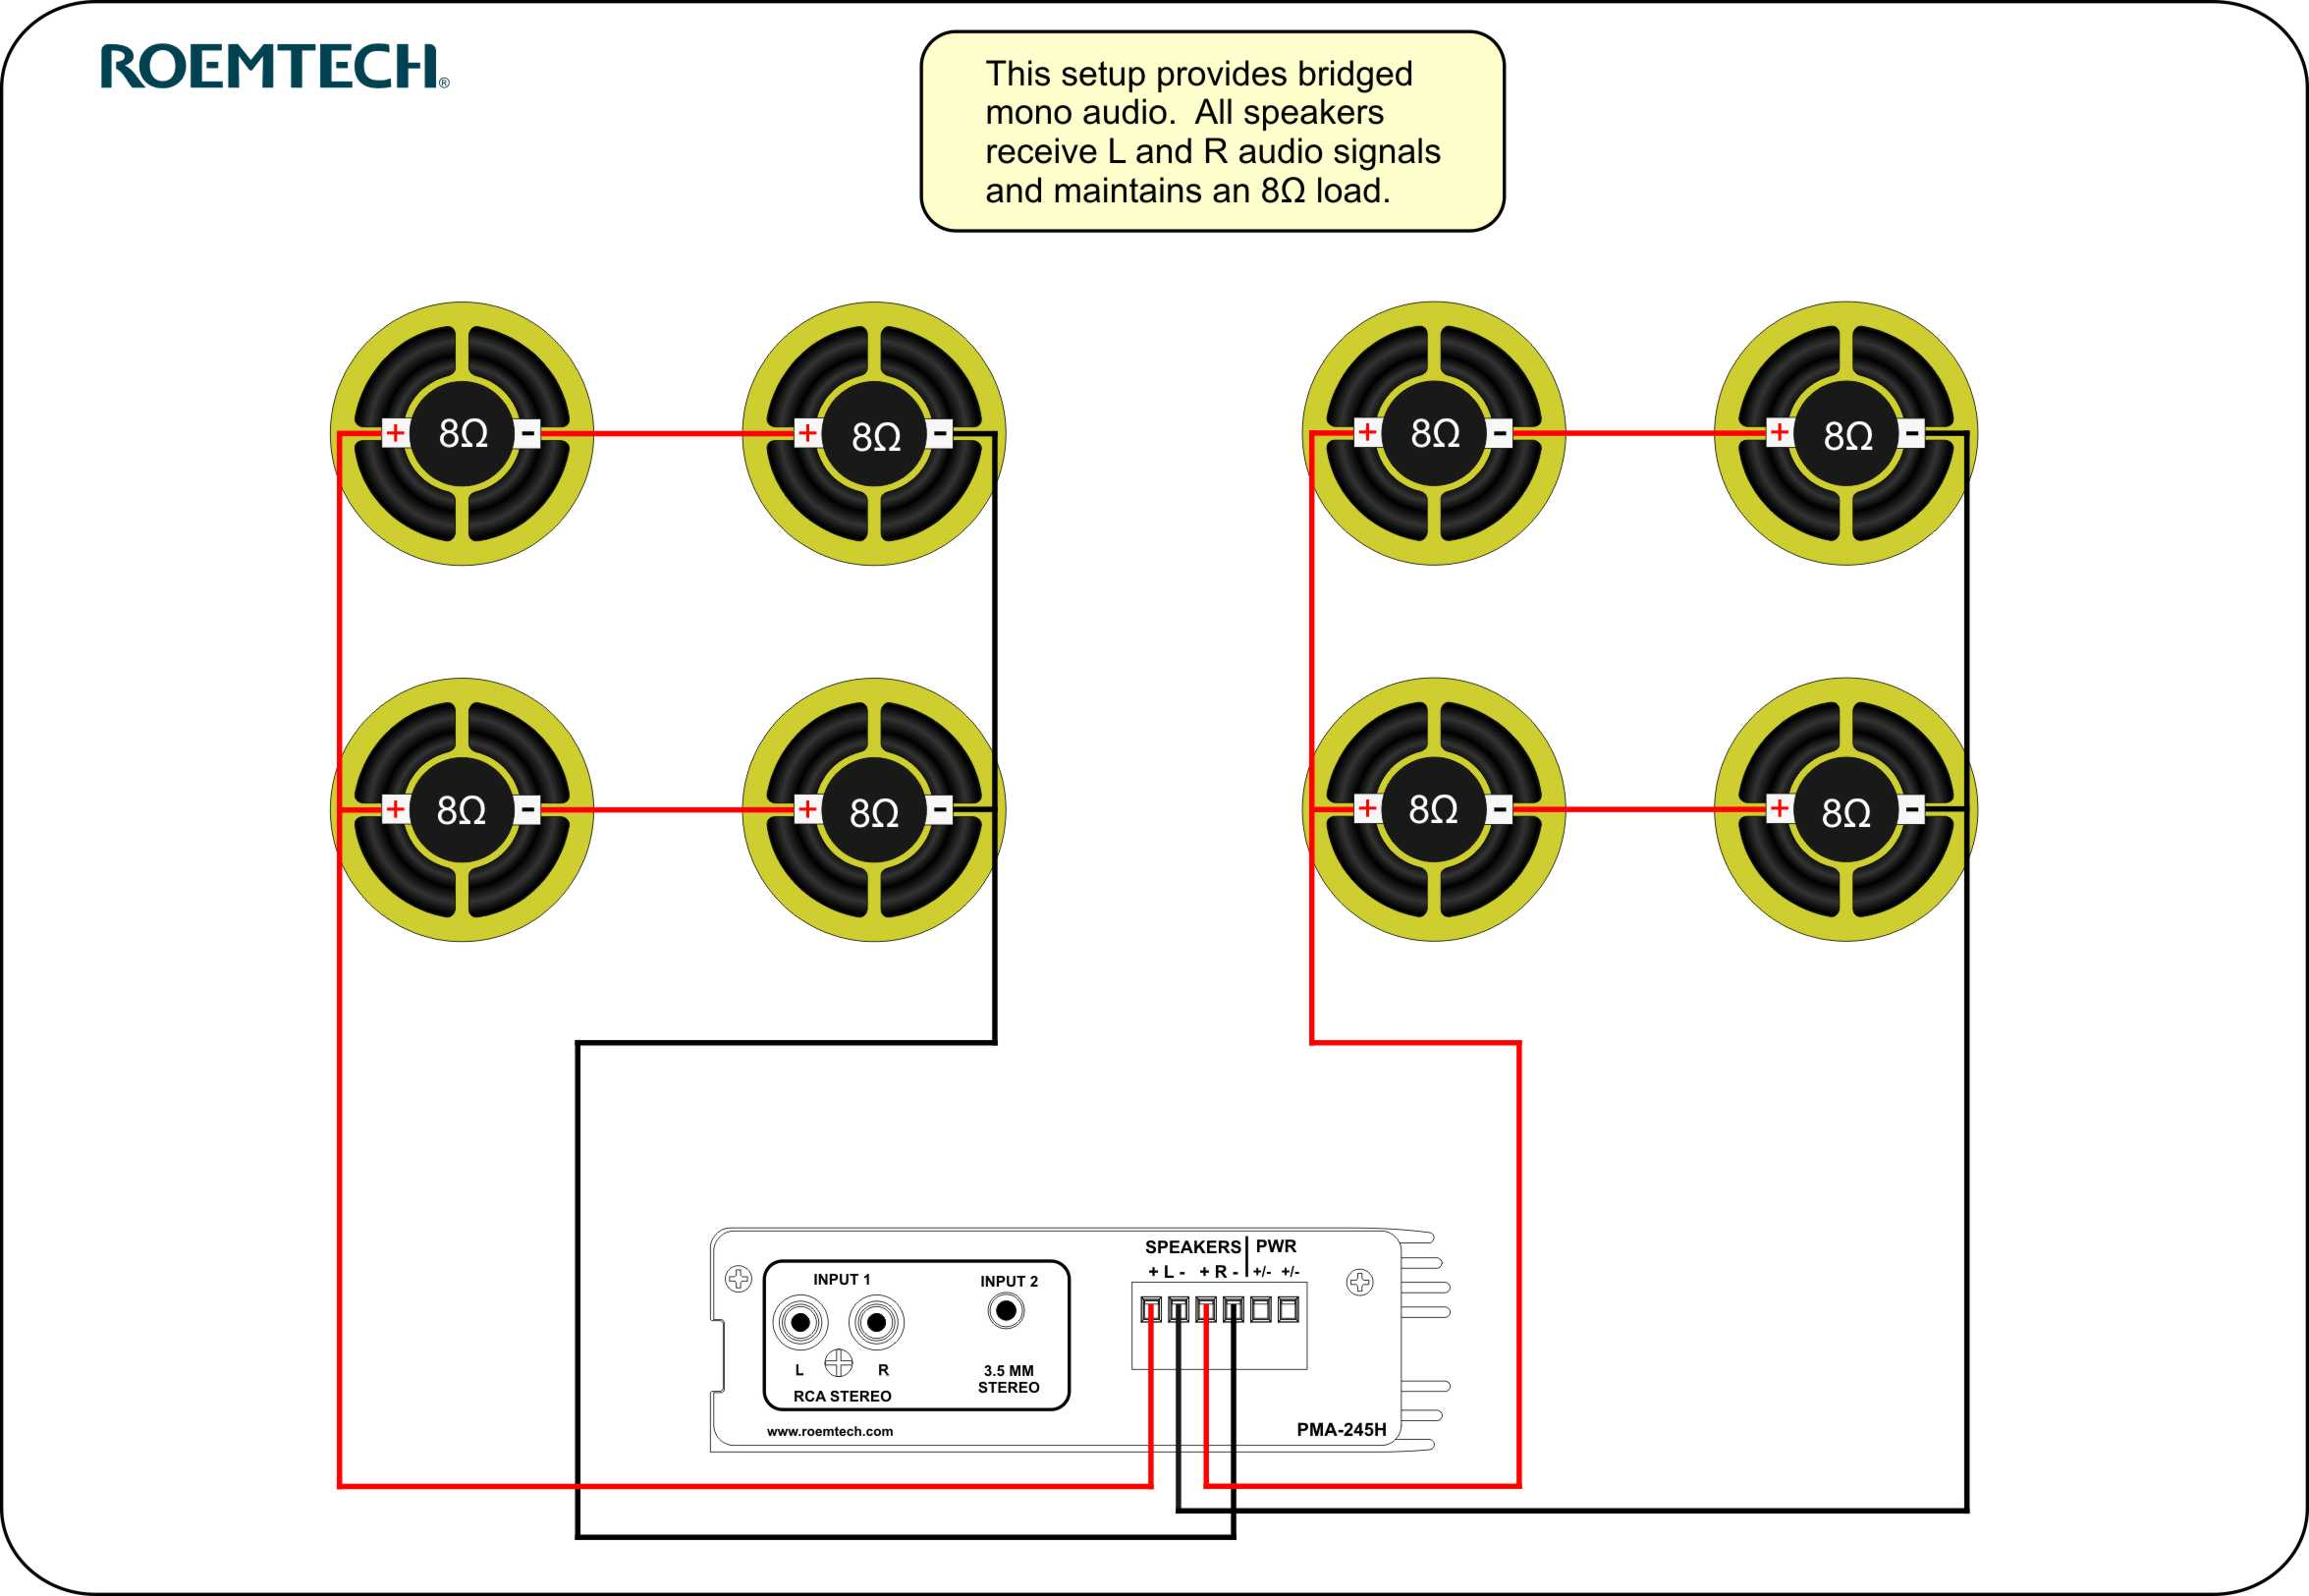 wiring diagram for cadillac srx bose speakers wiring diagram for speakers classroom audio systems - multiple speaker wiring diagram